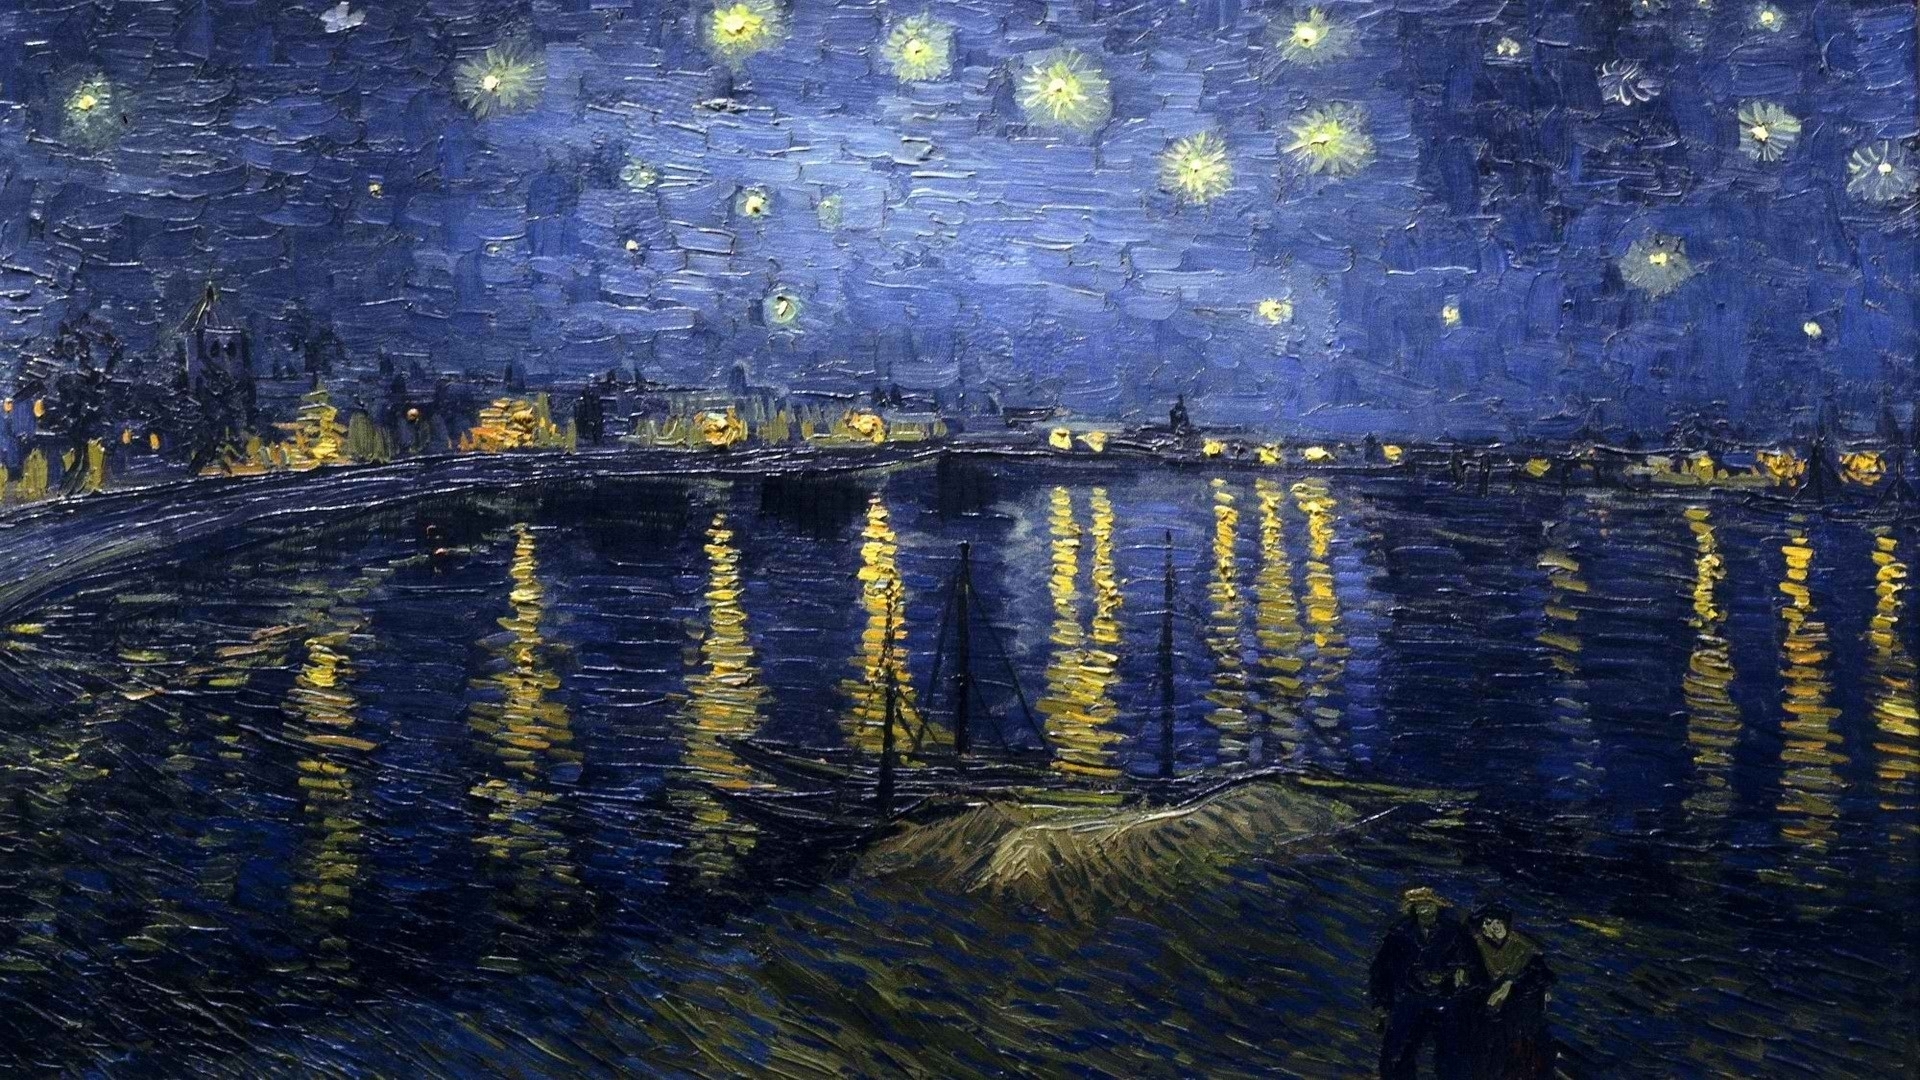 night-world-vincent-van-gogh-starry-night-over-the-rhone-1920x1080